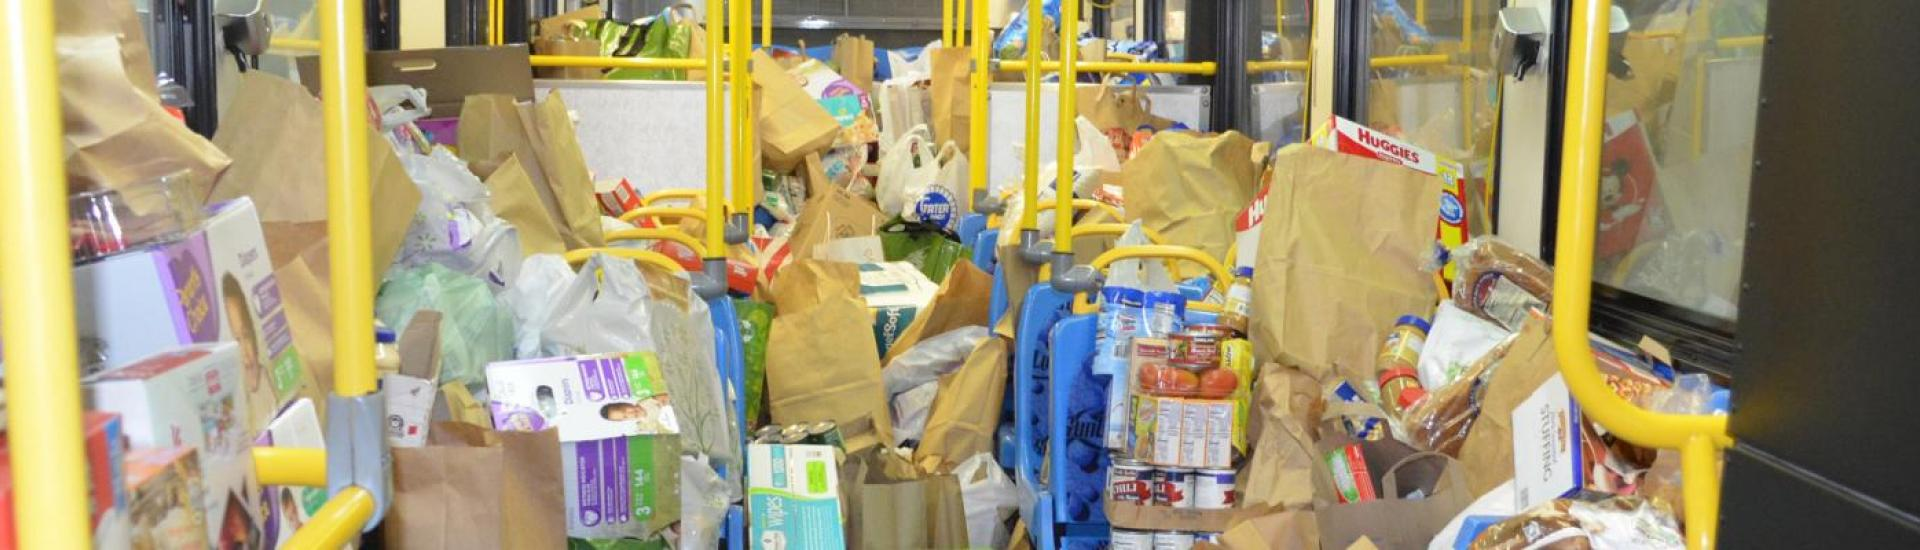 Fill the Bus image of collected food and hygiene items